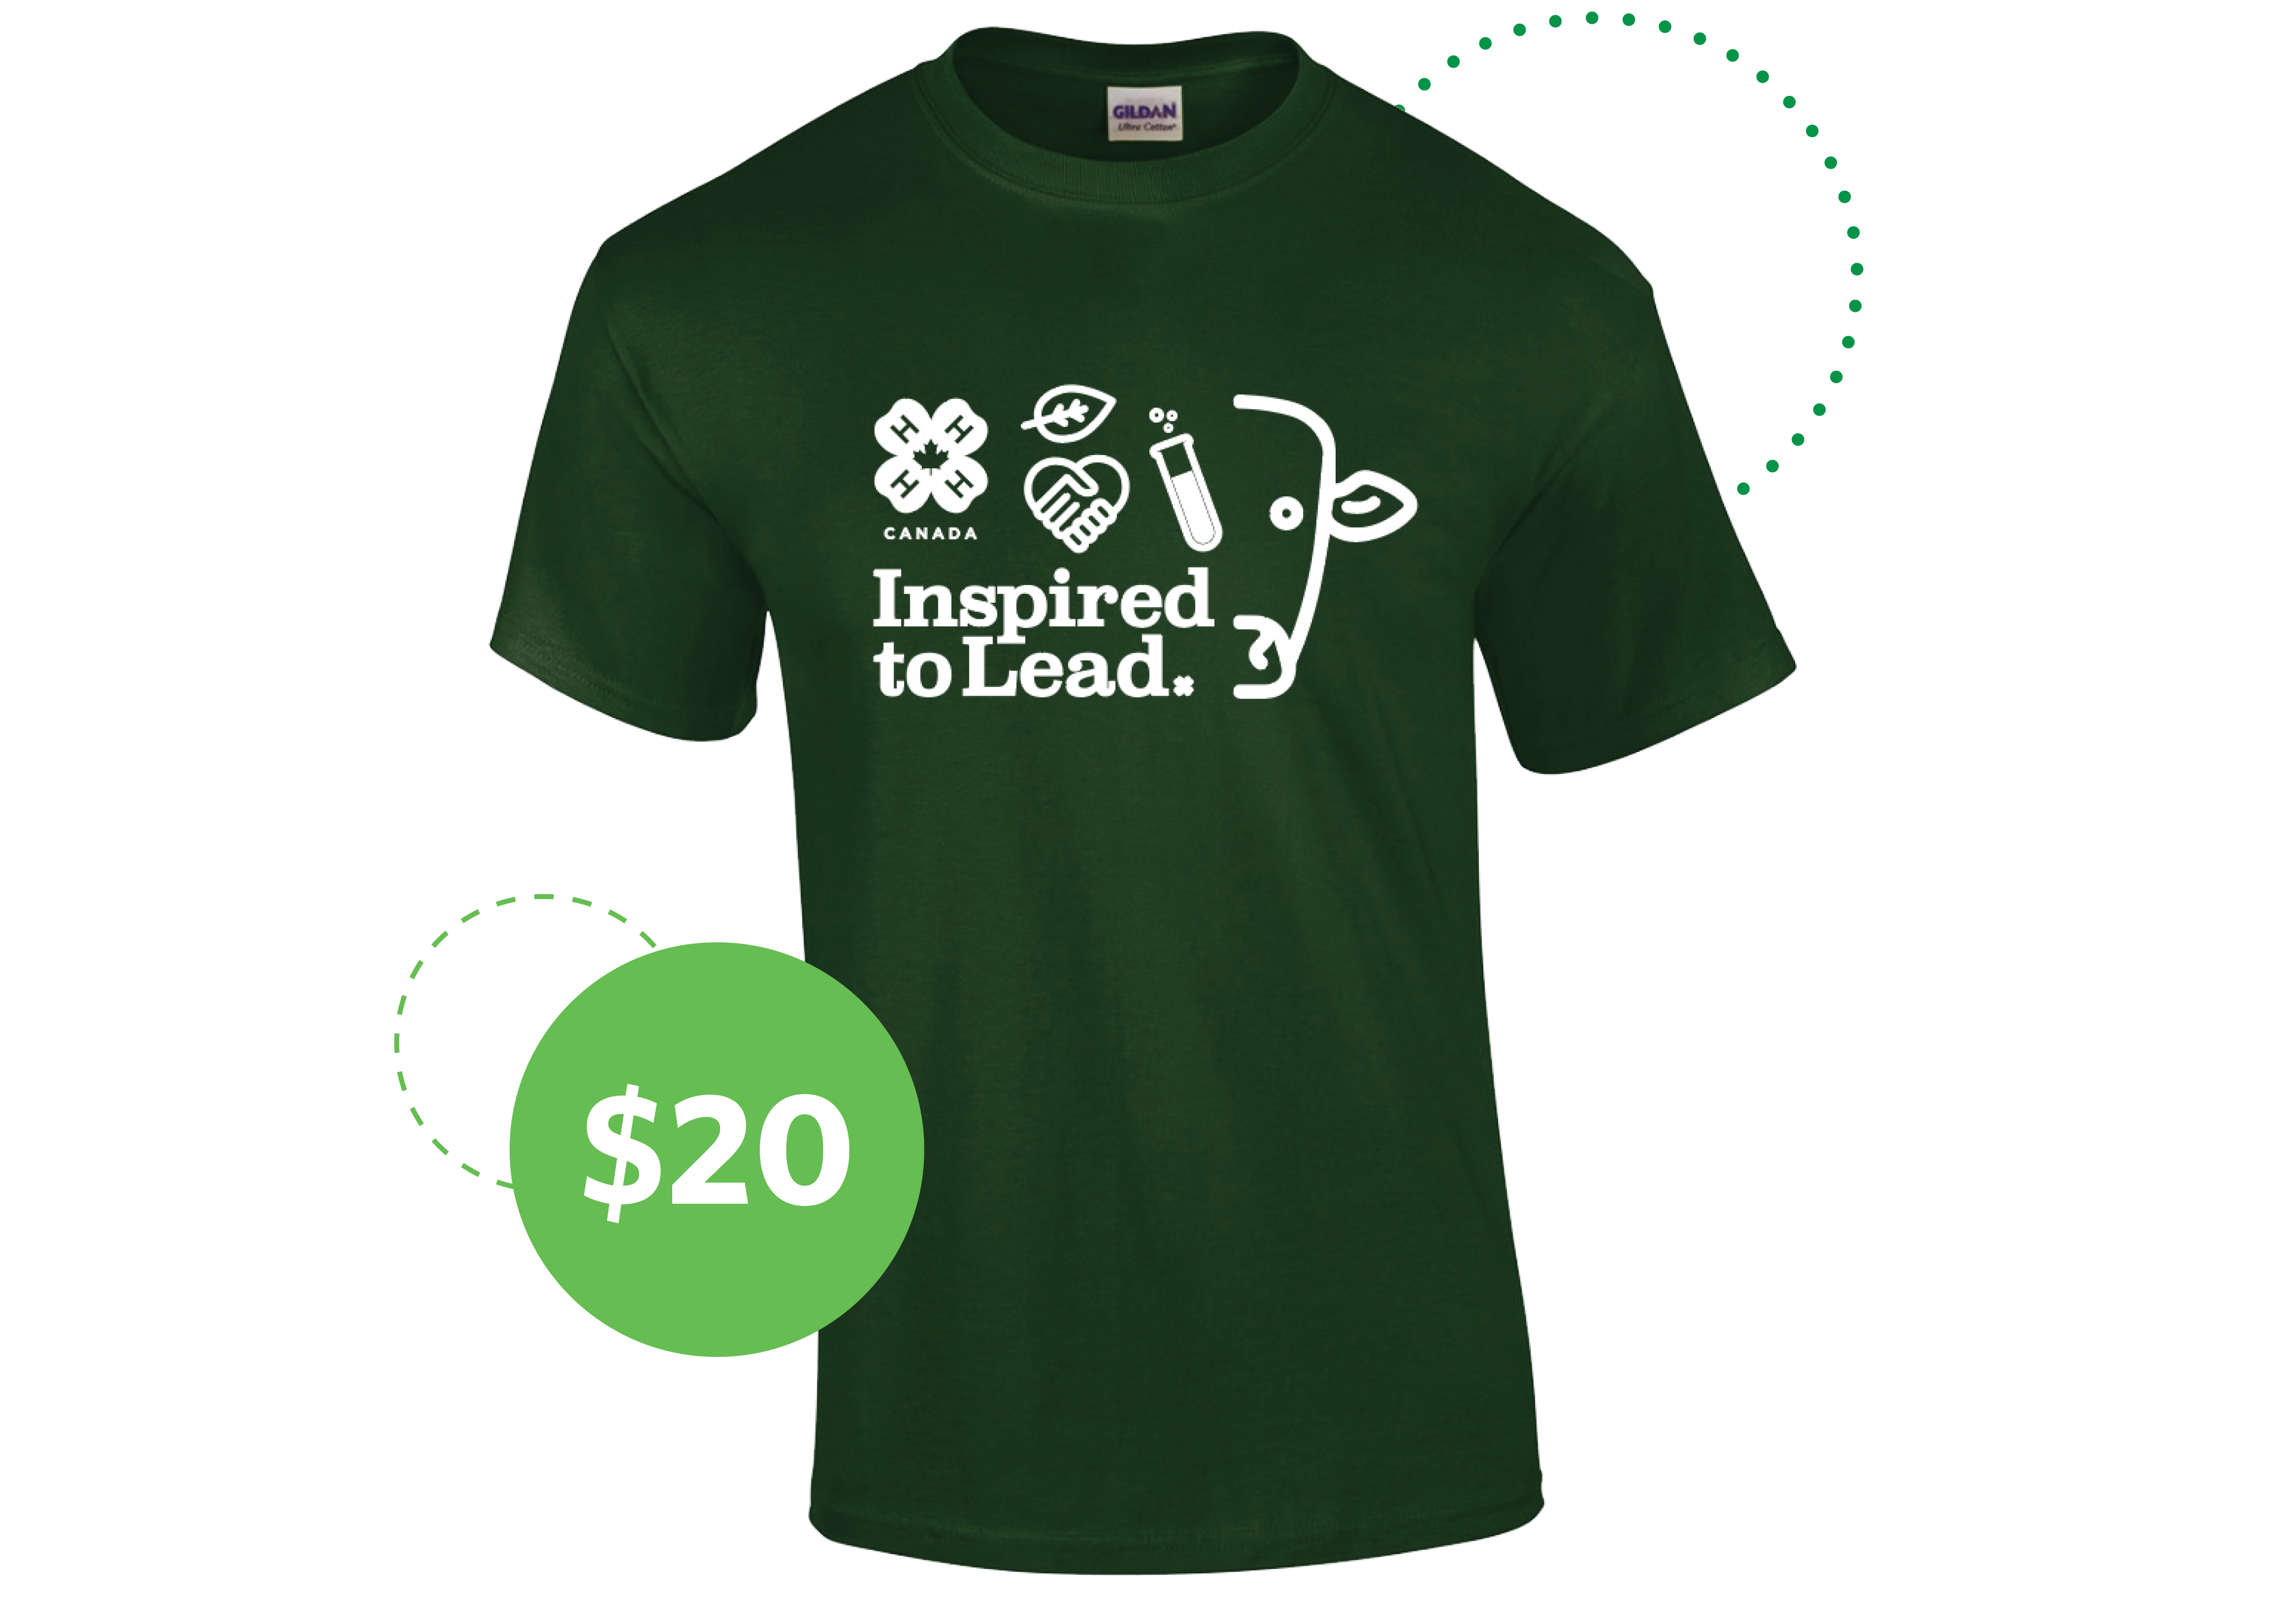 Inspired to Lead T-shirt